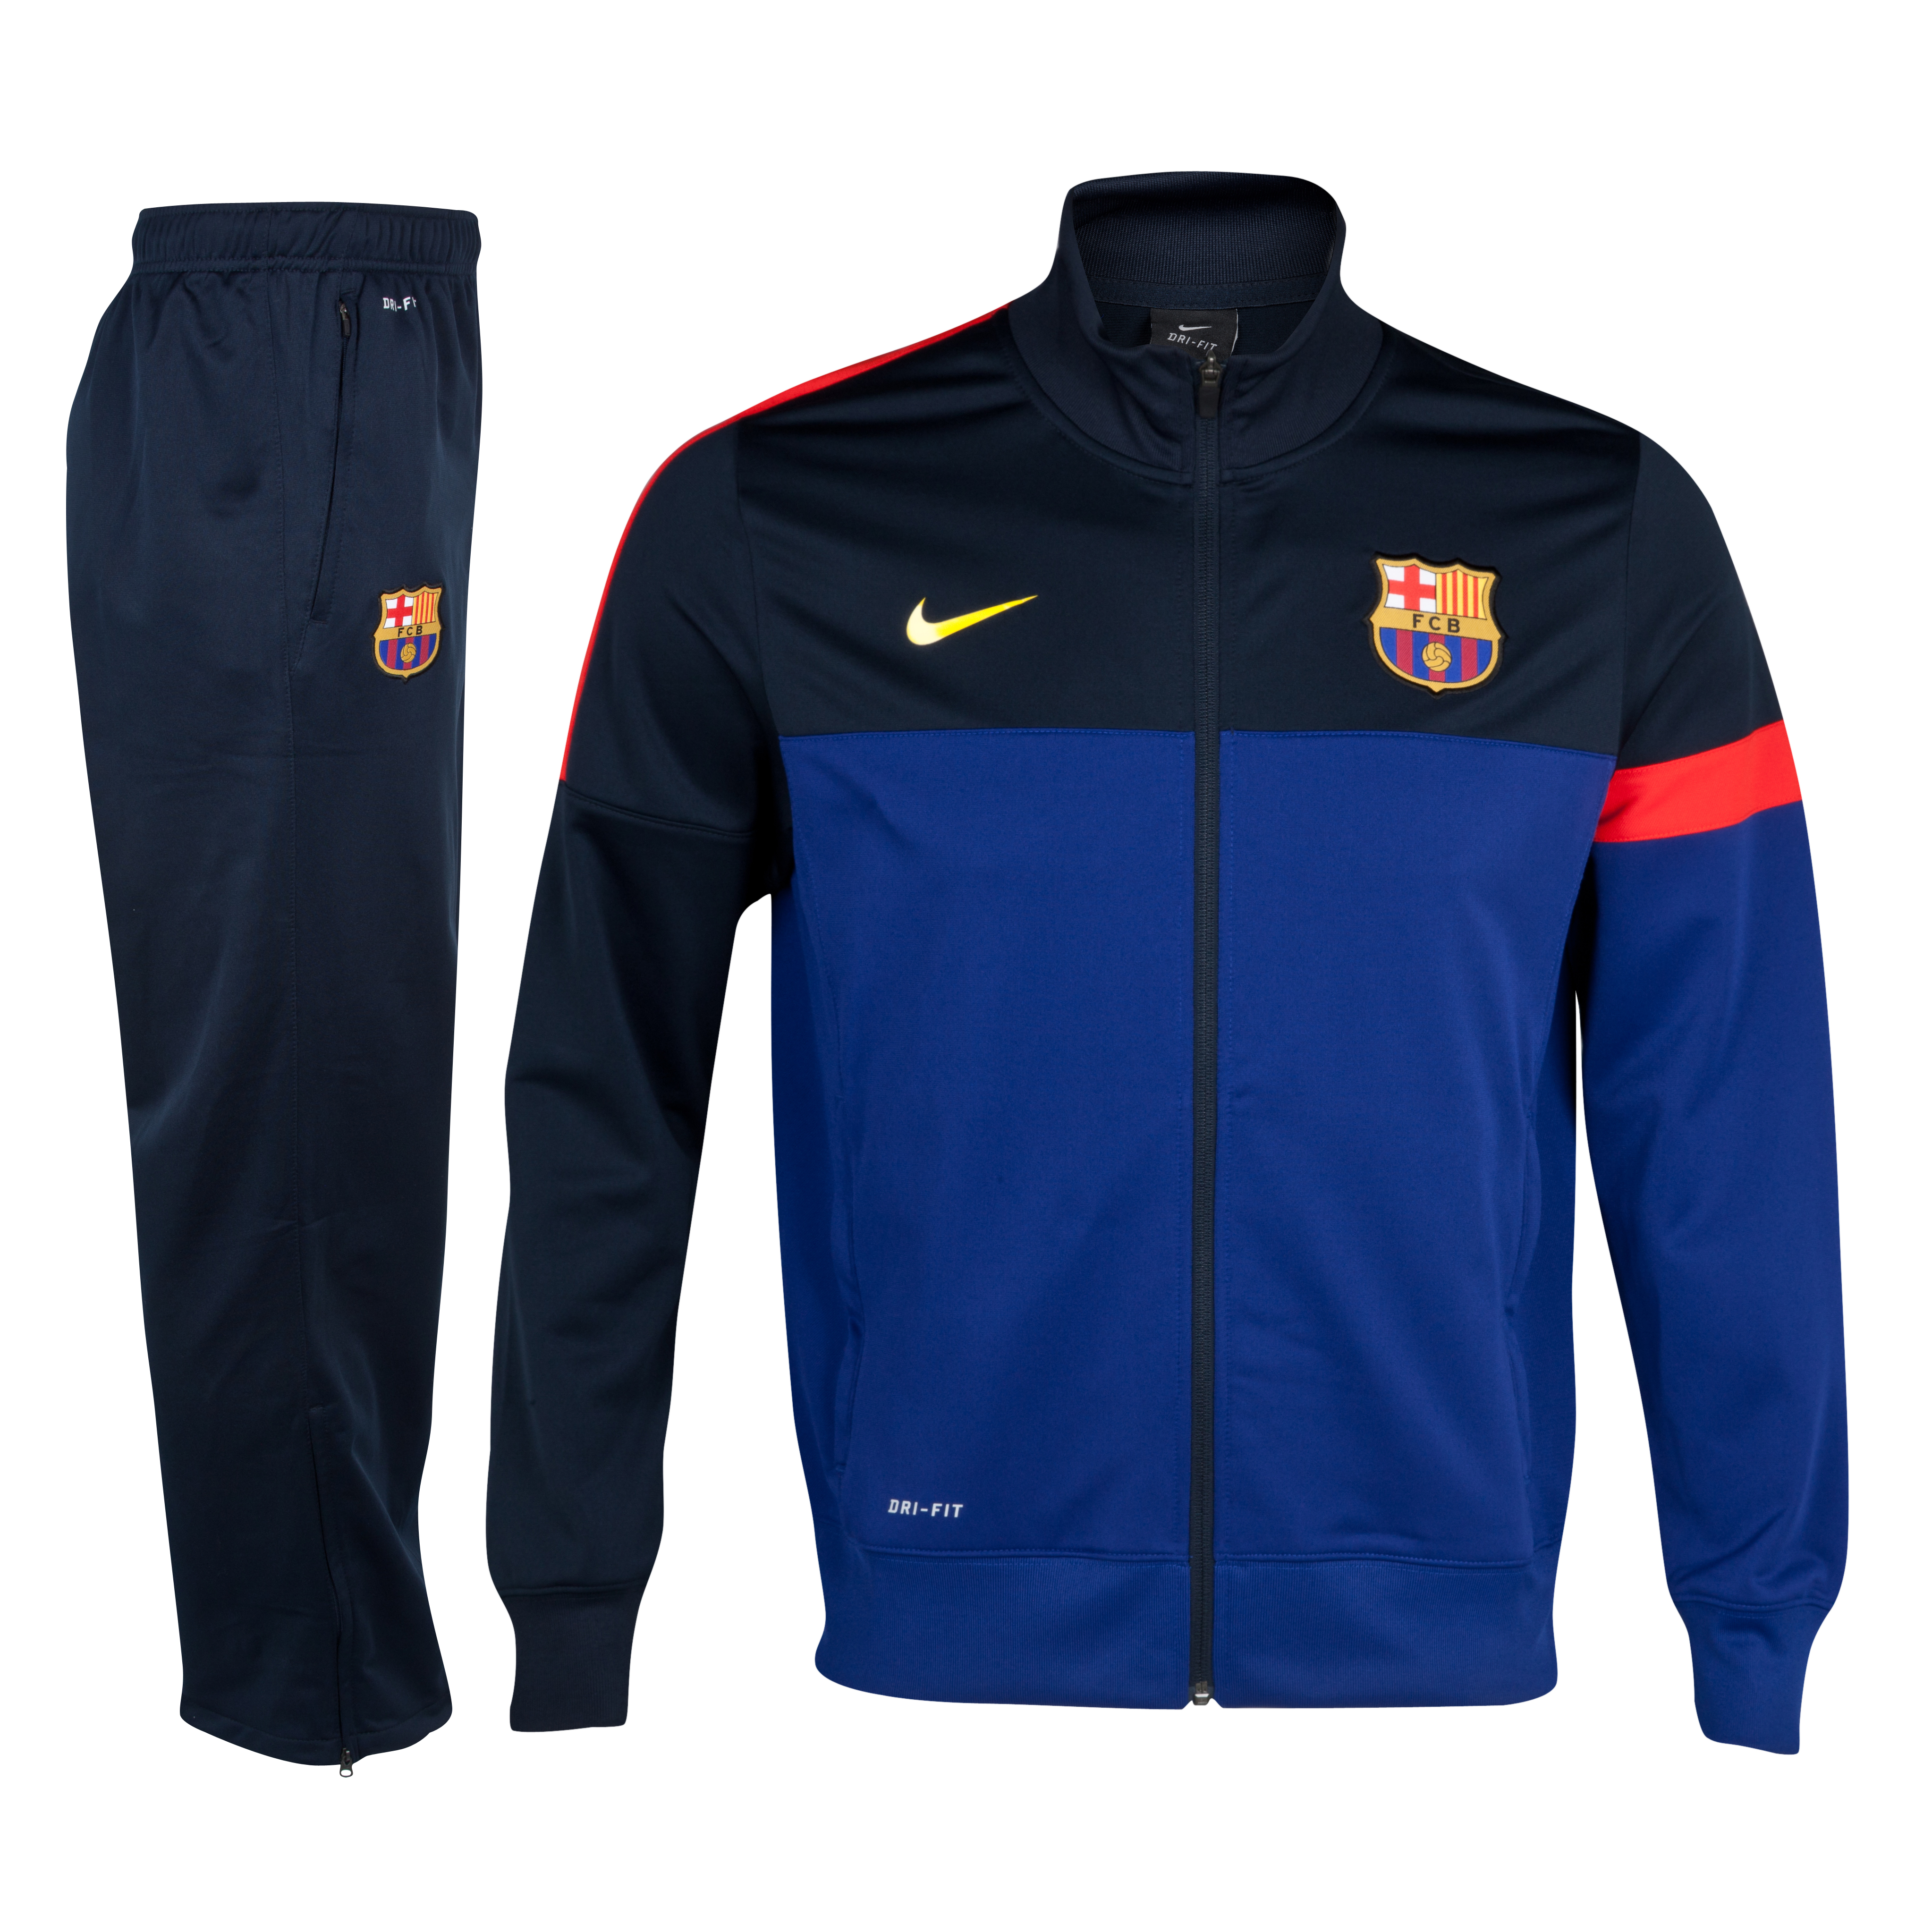 Barcelona Sideline Knit Warm Up Tracksuit - Deep Royal Blue/Tour Yellow